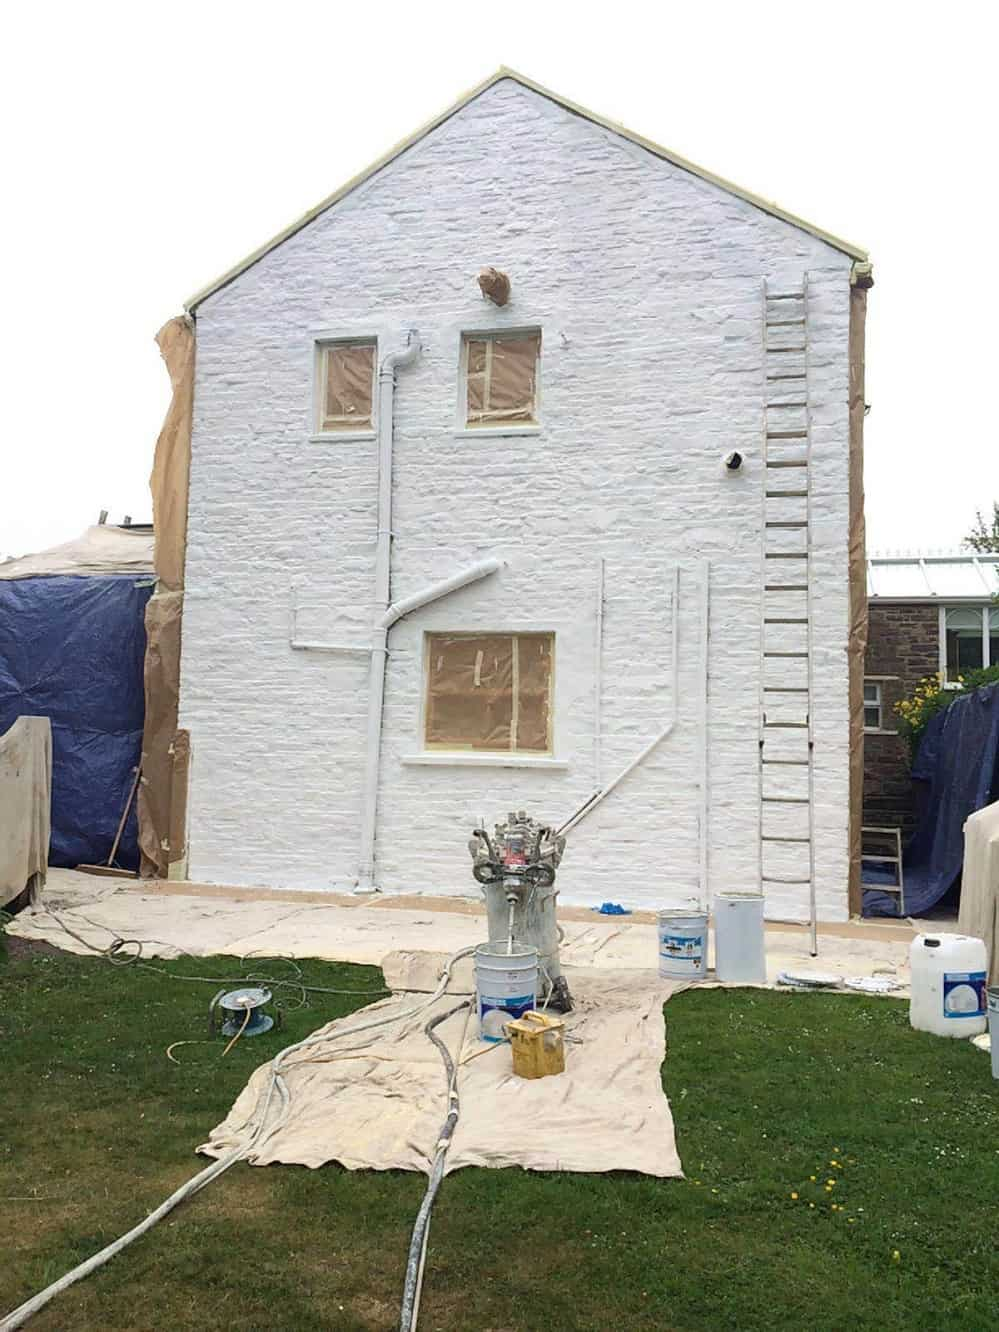 Bishop Auckland house with primer coating on wall